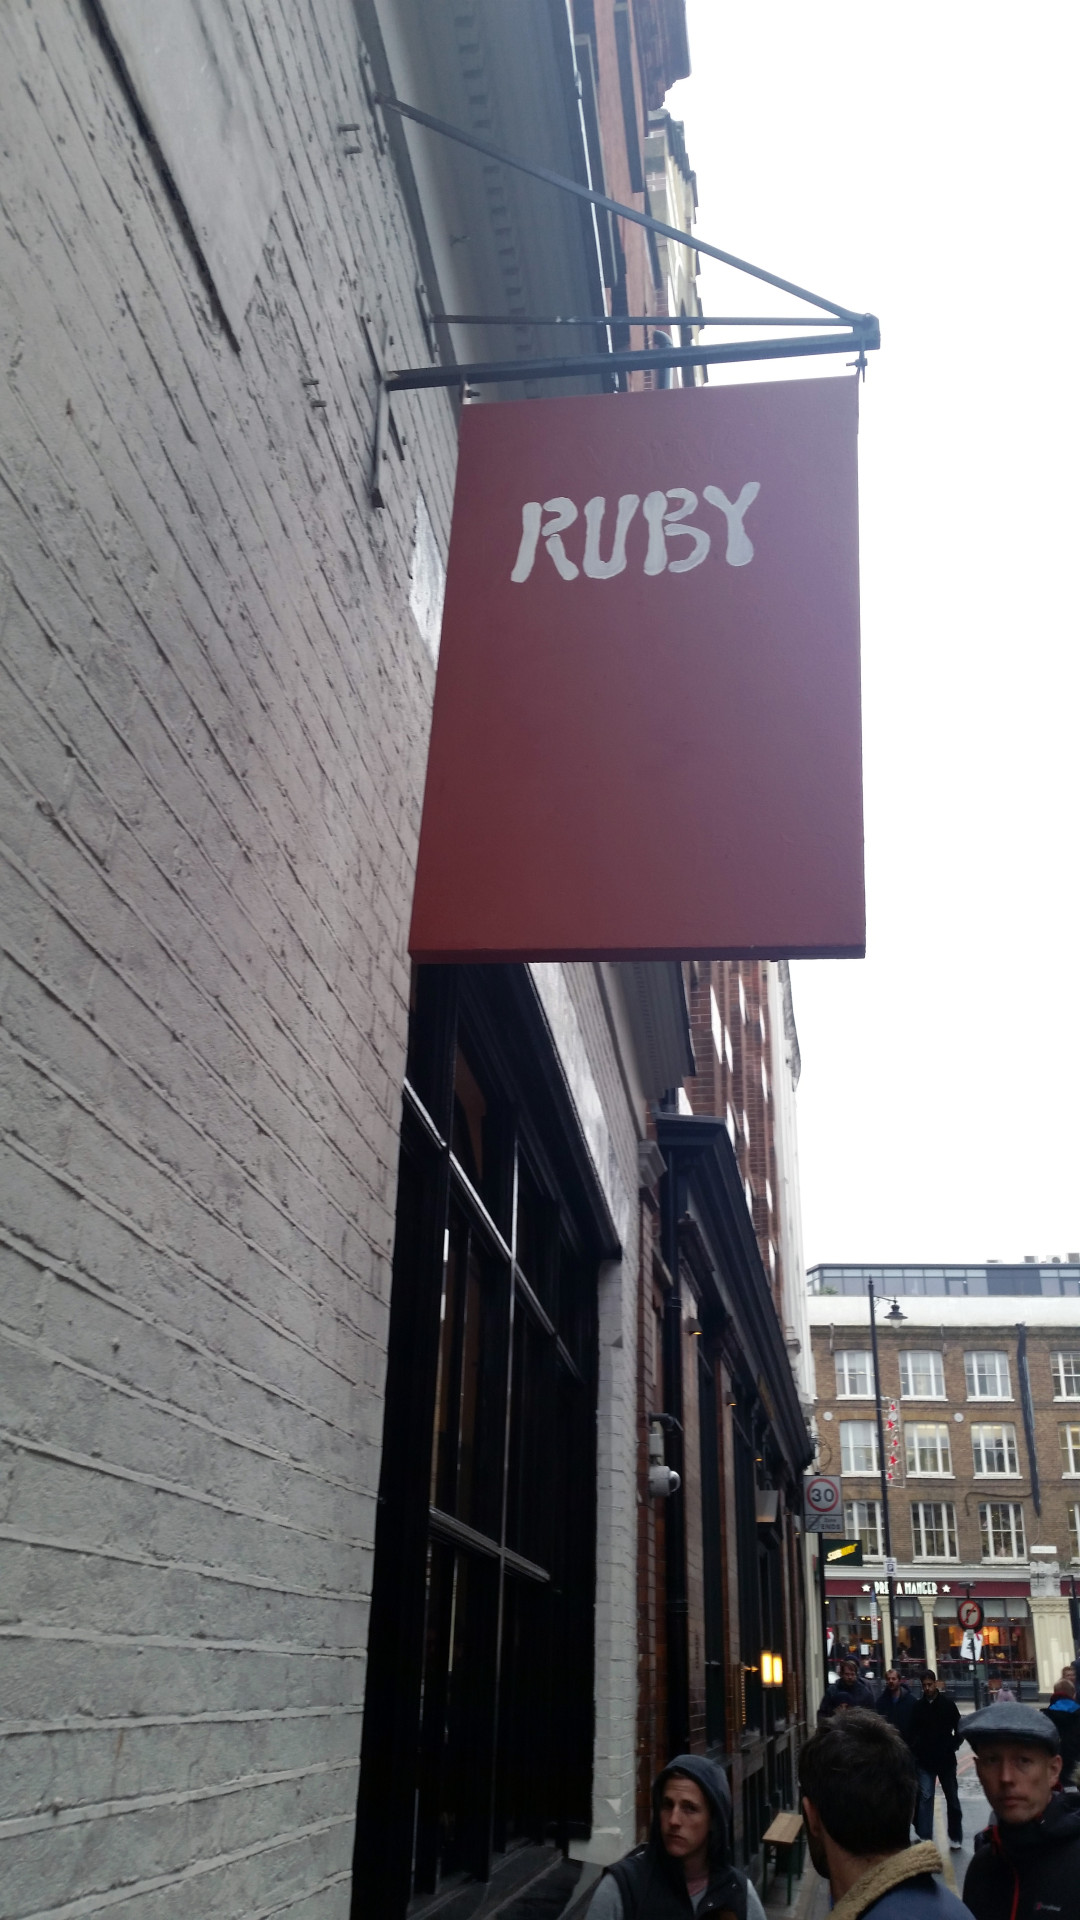 Ruby sign from the street